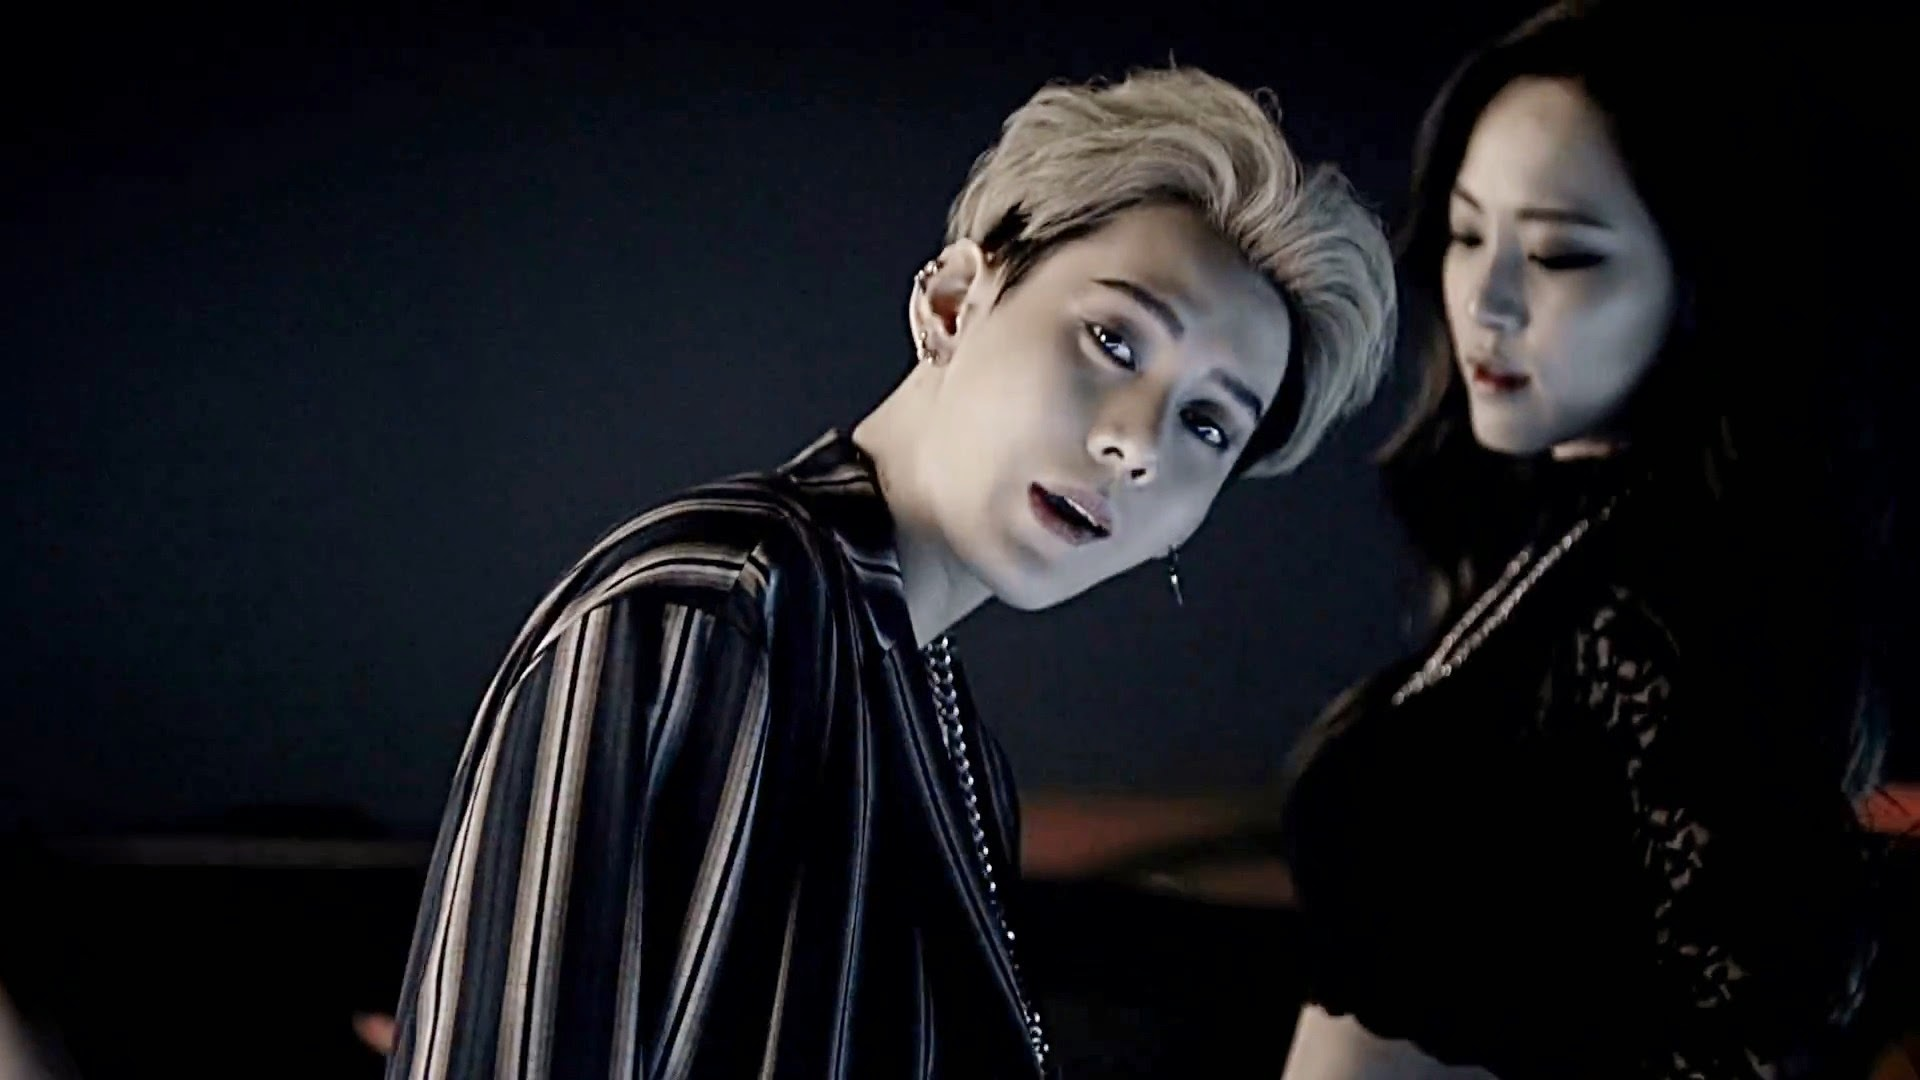 Myname's GunWoo from Just Tell Me MV